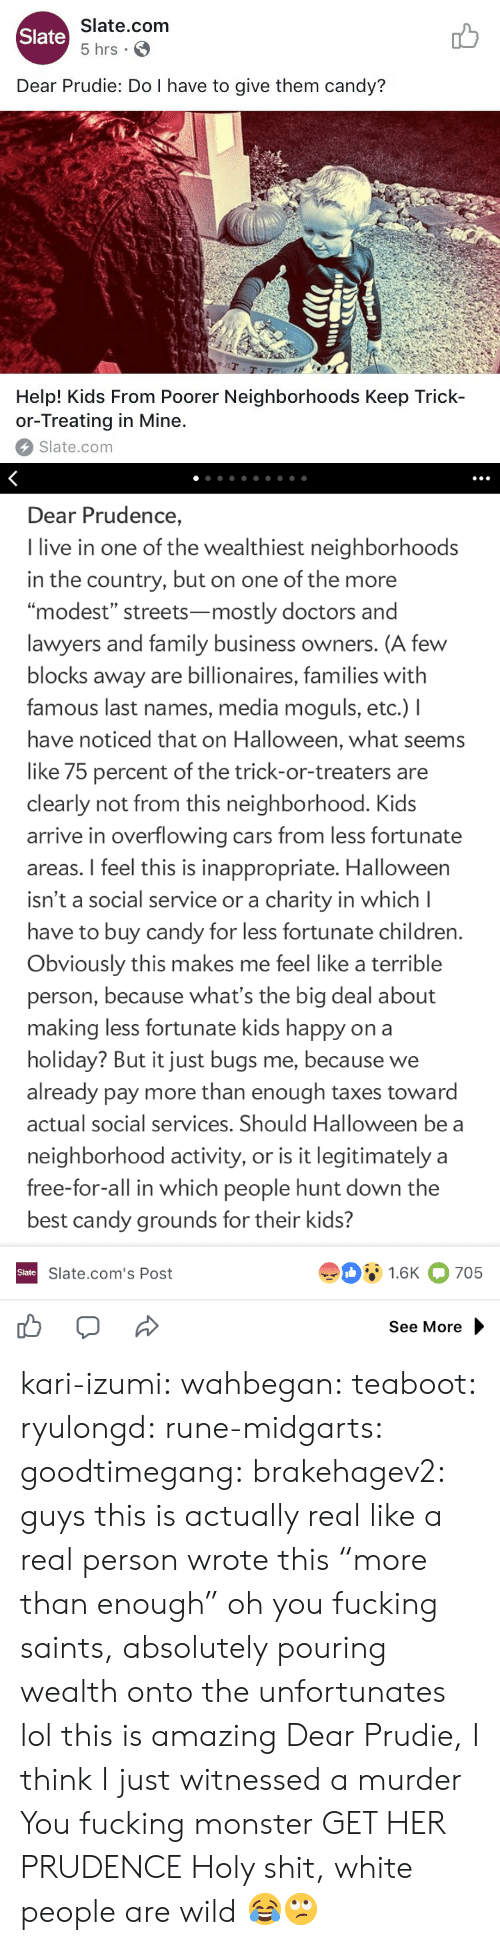 """Terrible Person: Slate.com  5 hrs .  Slate  Dear Prudie: Do I have to give them candy?  aT  T-T  Help! Kids From Poorer Neighborhoods Keep Trick-  or-Treating in Mine.  Slate.com   Dear Prudence,  I live in one of the wealthiest neighborhoods  in the country, but on one of the more  """"modest"""" streets-mostly doctors and  lawyers and family business owners. (A few  blocks away are billionaires, families with  famous last names, media moguls, etc.) I  have noticed that on Halloween, what seems  like 75 percent of the trick-or-treaters are  clearly not from this neighborhood. Kids  arrive in overflowing cars from less fortunate  areas. I feel this is inappropriate. Halloween  isn't a social service or a charity in which l  have to buy candy for less fortunate children  Obviously this makes me feel like a terrible  person, because what's the big deal about  making less fortunate kids happy on a  holiday? But it just bugs me, because we  already pay more than enough taxes toward  actual social services. Should Halloween be a  neighborhood activity, or is it legitimately a  free-for-all in which people hunt down the  best candy grounds for their kids?  91.6K 705  Slate  Slate.com's Post  See More kari-izumi: wahbegan:  teaboot:  ryulongd:  rune-midgarts:  goodtimegang:  brakehagev2:  guys this is actually real like a real person wrote this  """"more than enough"""" oh you fucking saints, absolutely pouring wealth onto the unfortunates   lol this is amazing   Dear Prudie, I think I just witnessed a murder  You fucking monster  GET HER PRUDENCE   Holy shit, white people are wild 😂🙄"""